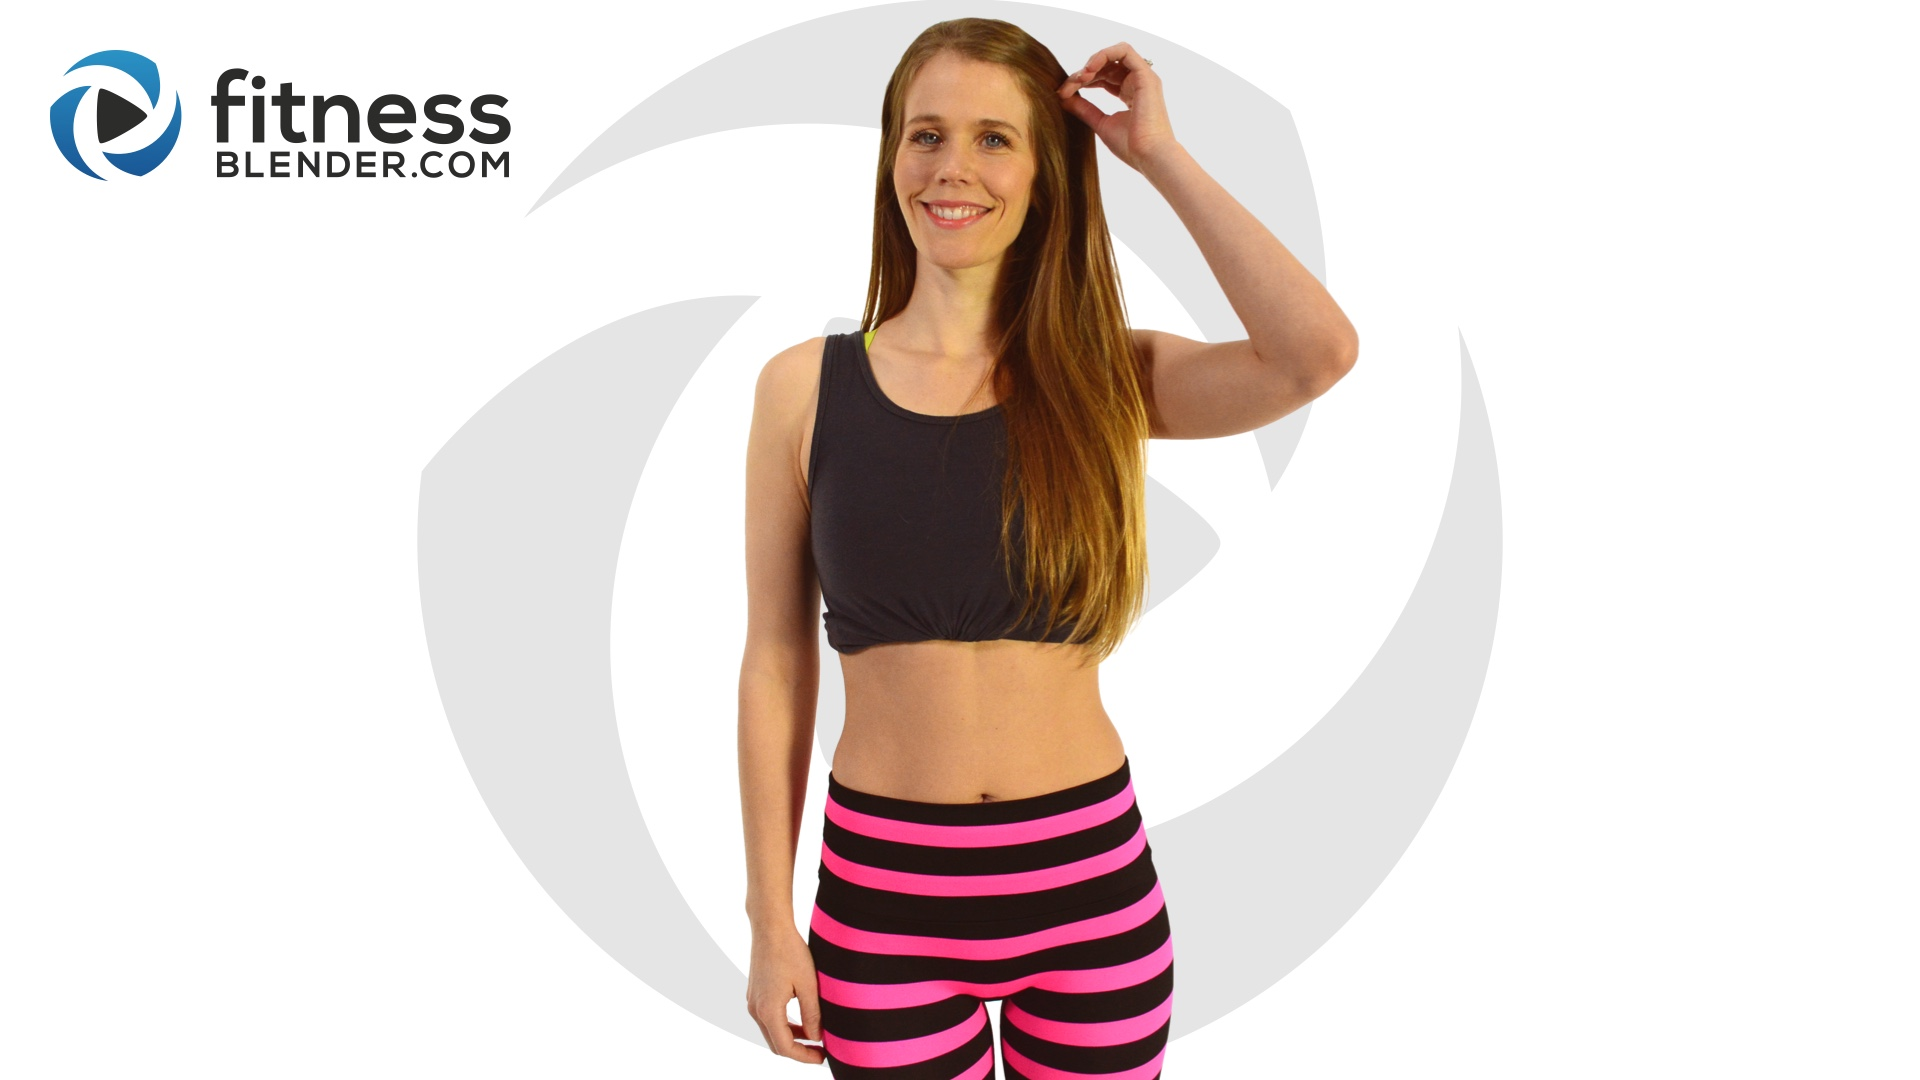 10 Minute Upper Body Workout Upper Body Exercises For Toning And